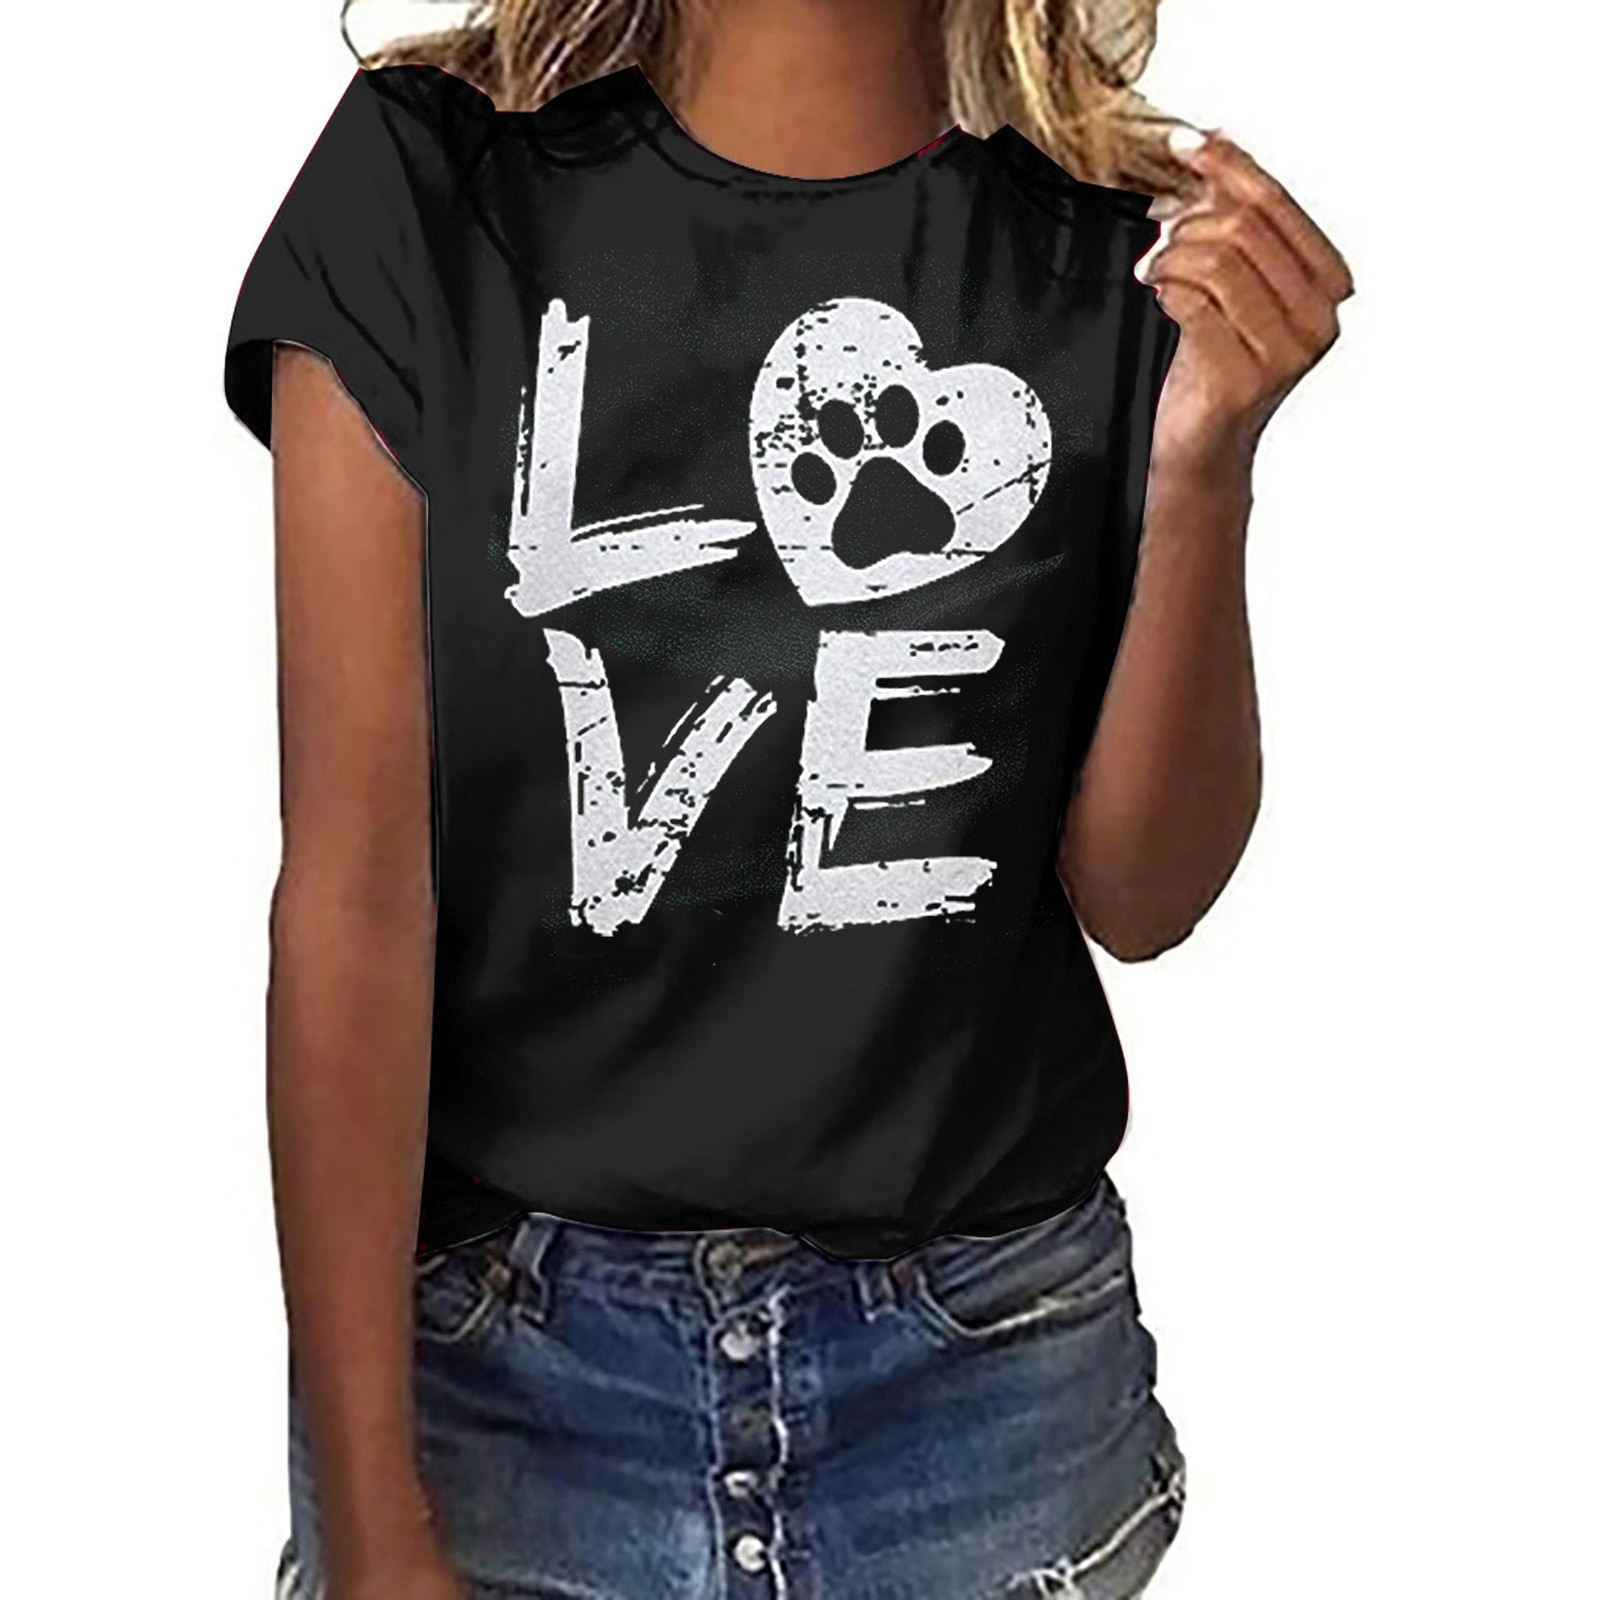 Fashion Unisex T-shirt Love letter Printed Pattern Casual Fashion Short Sleeve Tops men and women can wear camisetas de mujer